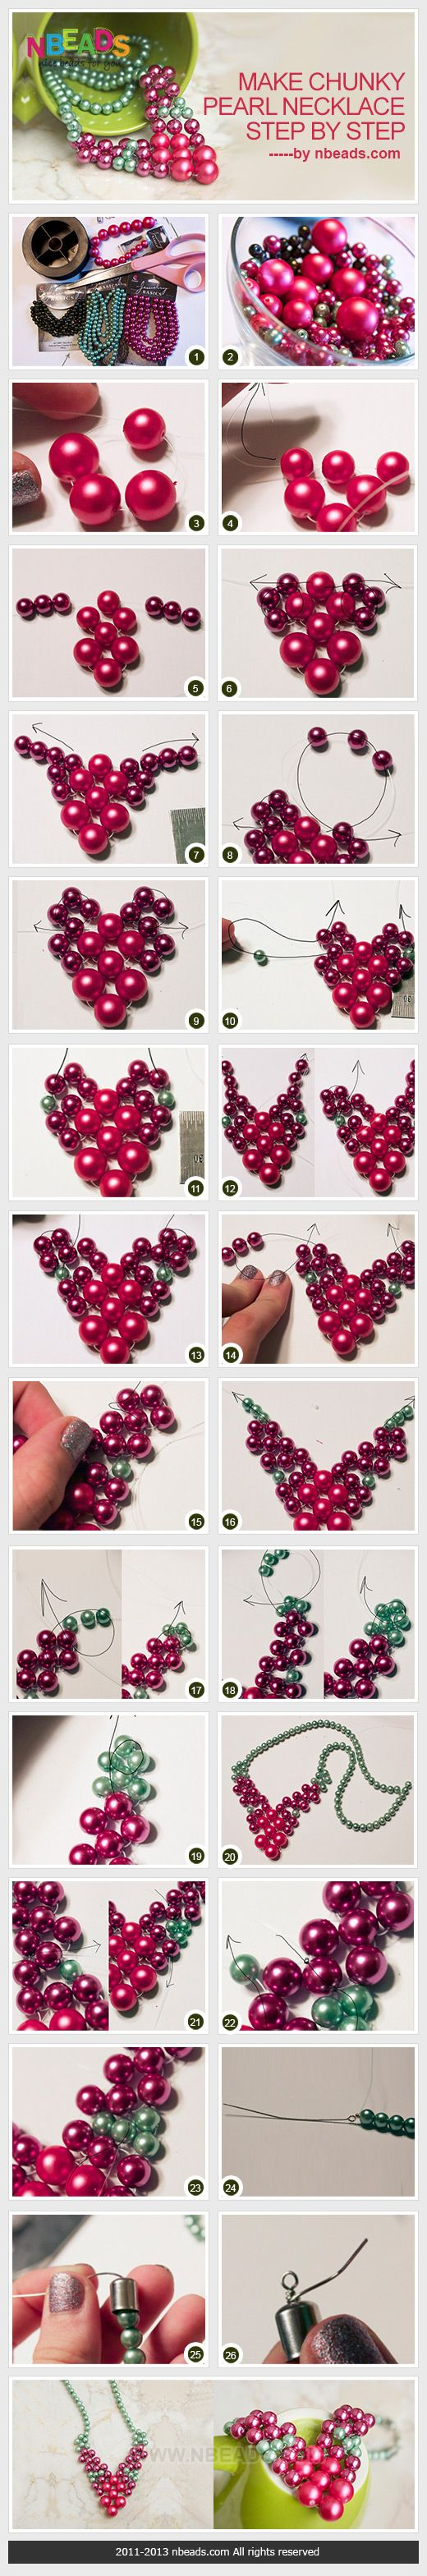 make chunky pearl necklace step by step | ༺✿༻Beadwork Jewelry ...